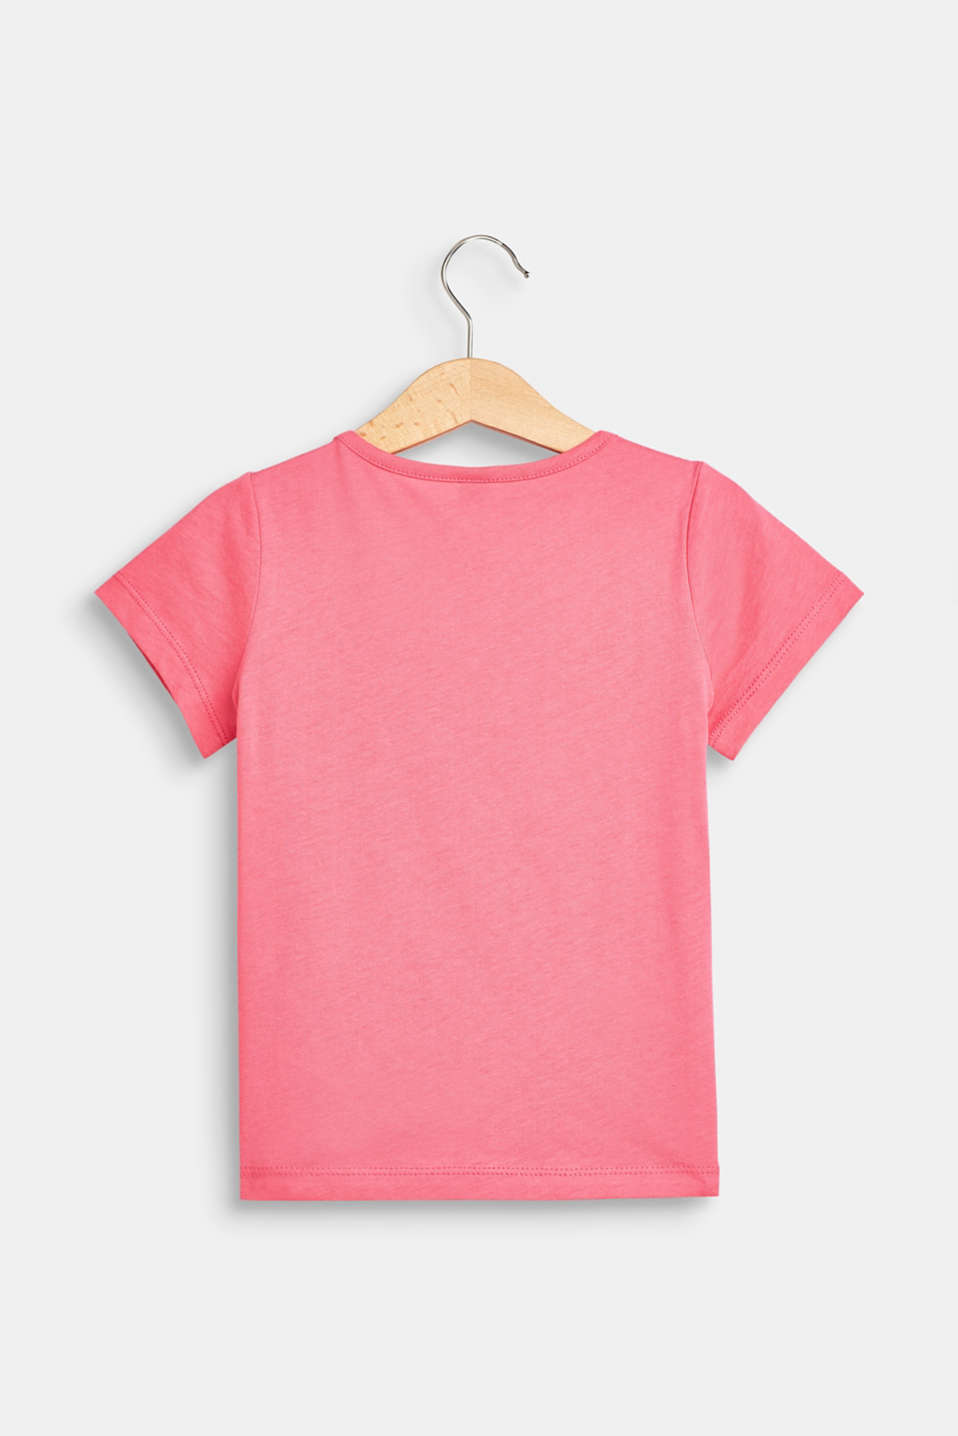 T-shirt with a glittering horse print, 100% cotton, DARK PINK, detail image number 1